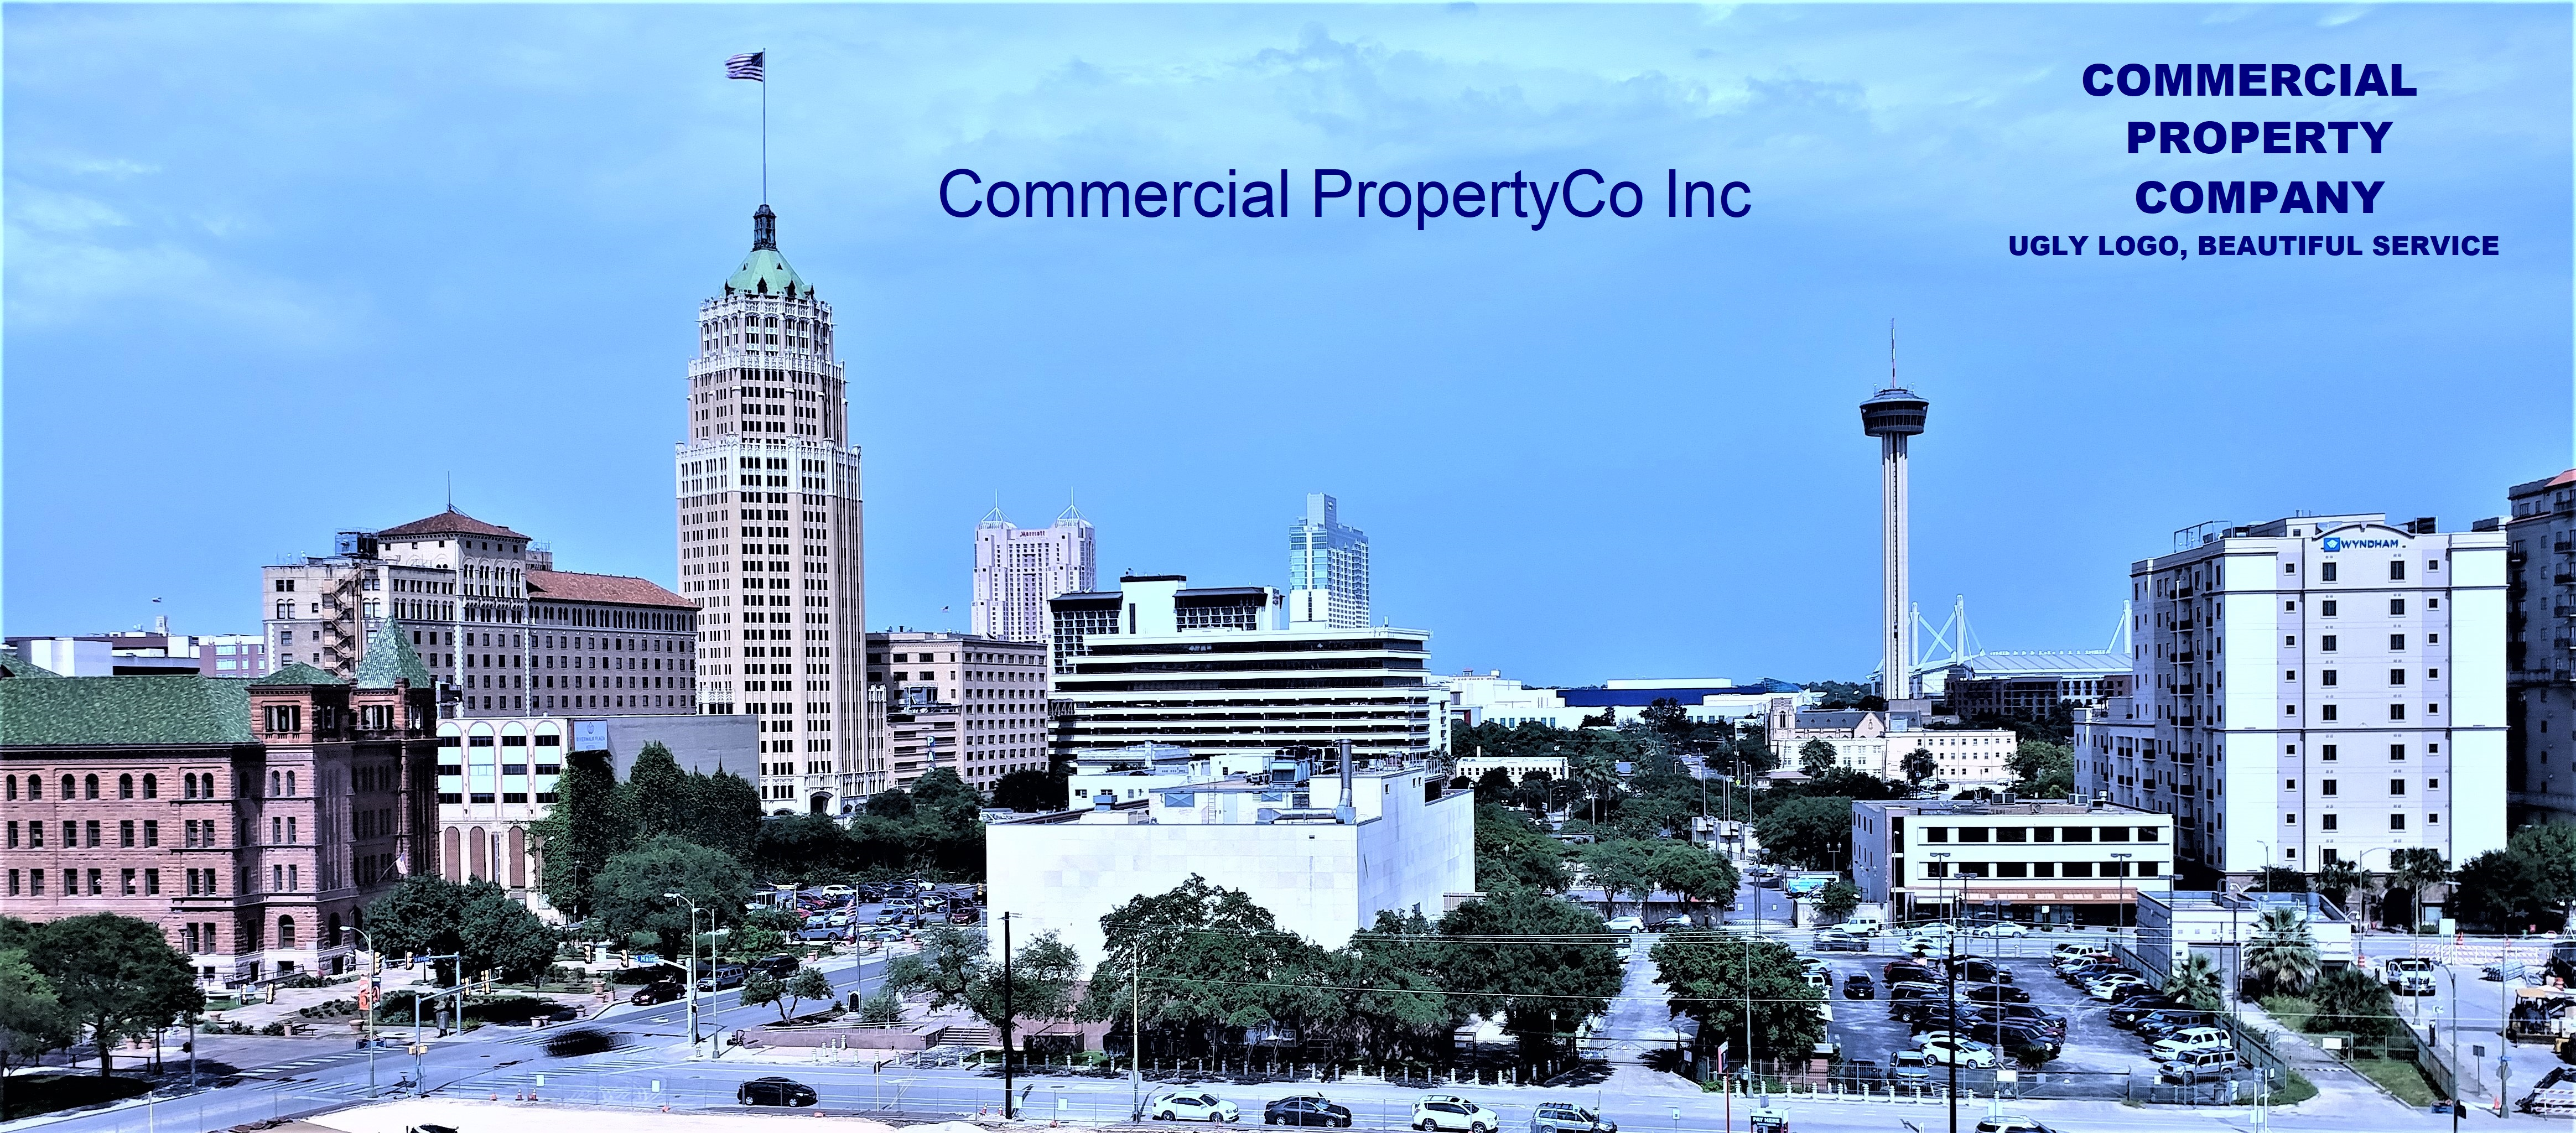 Commercial Propertyco front page)